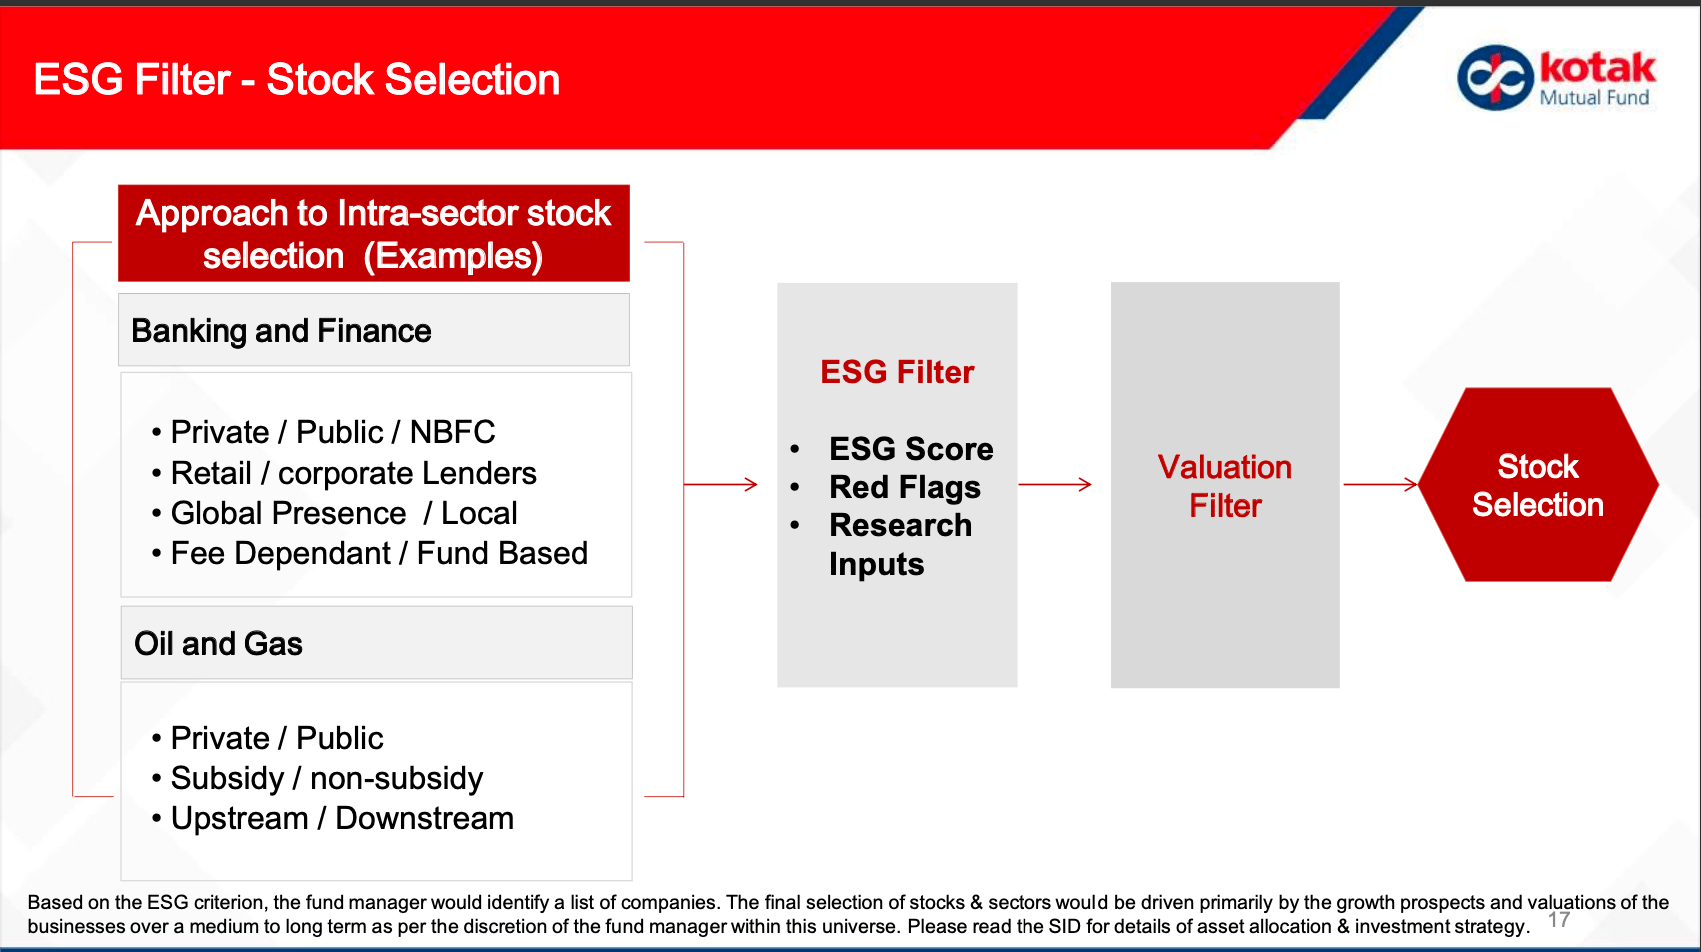 ESG equity selection